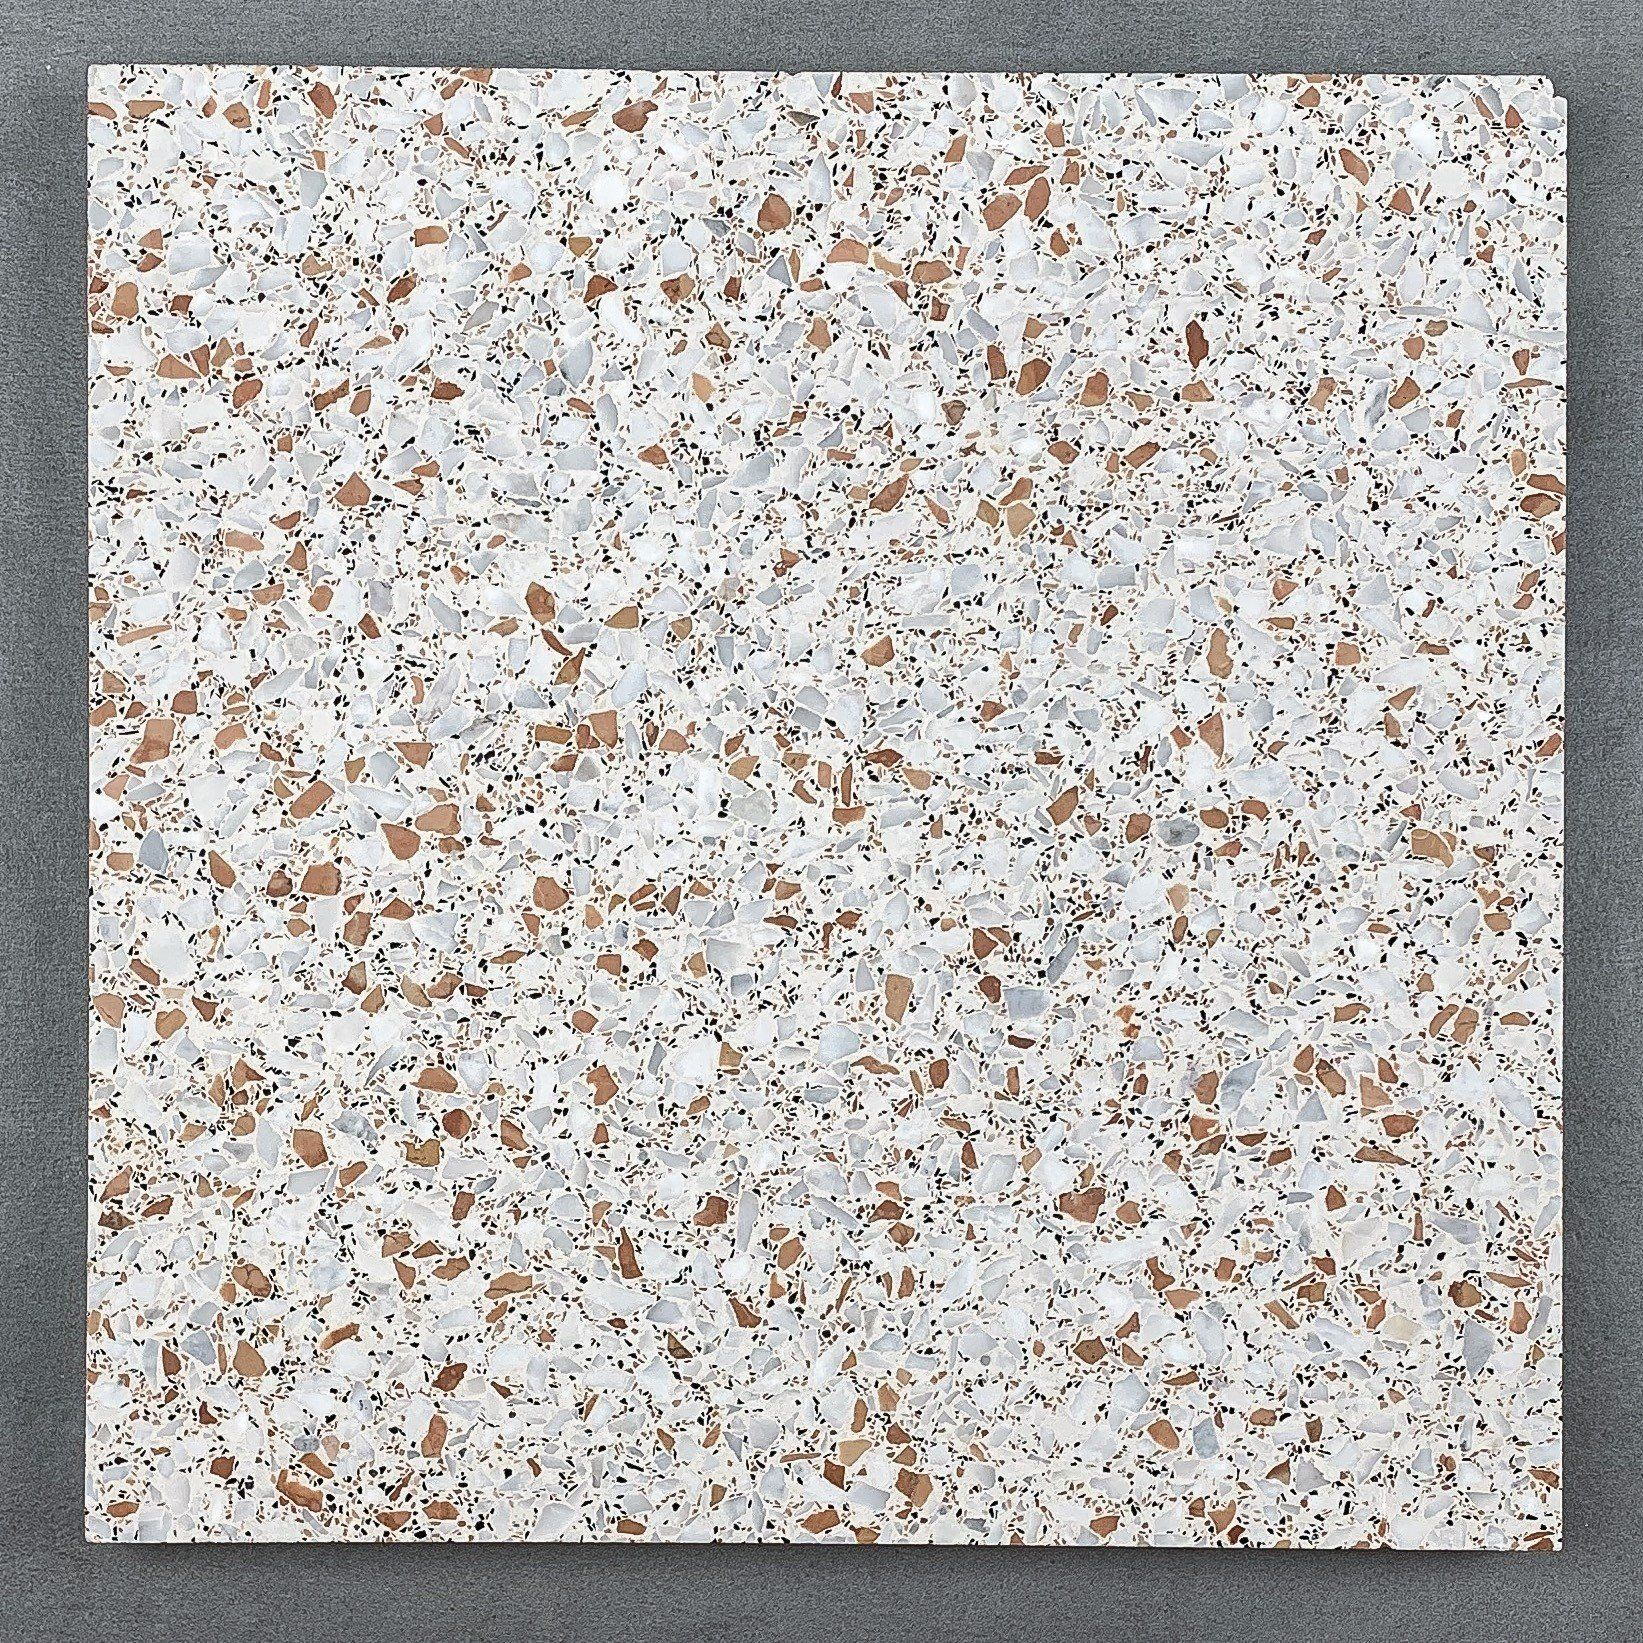 A Cream Based Terrazzo Tiles Of Grey White And Red Coloured